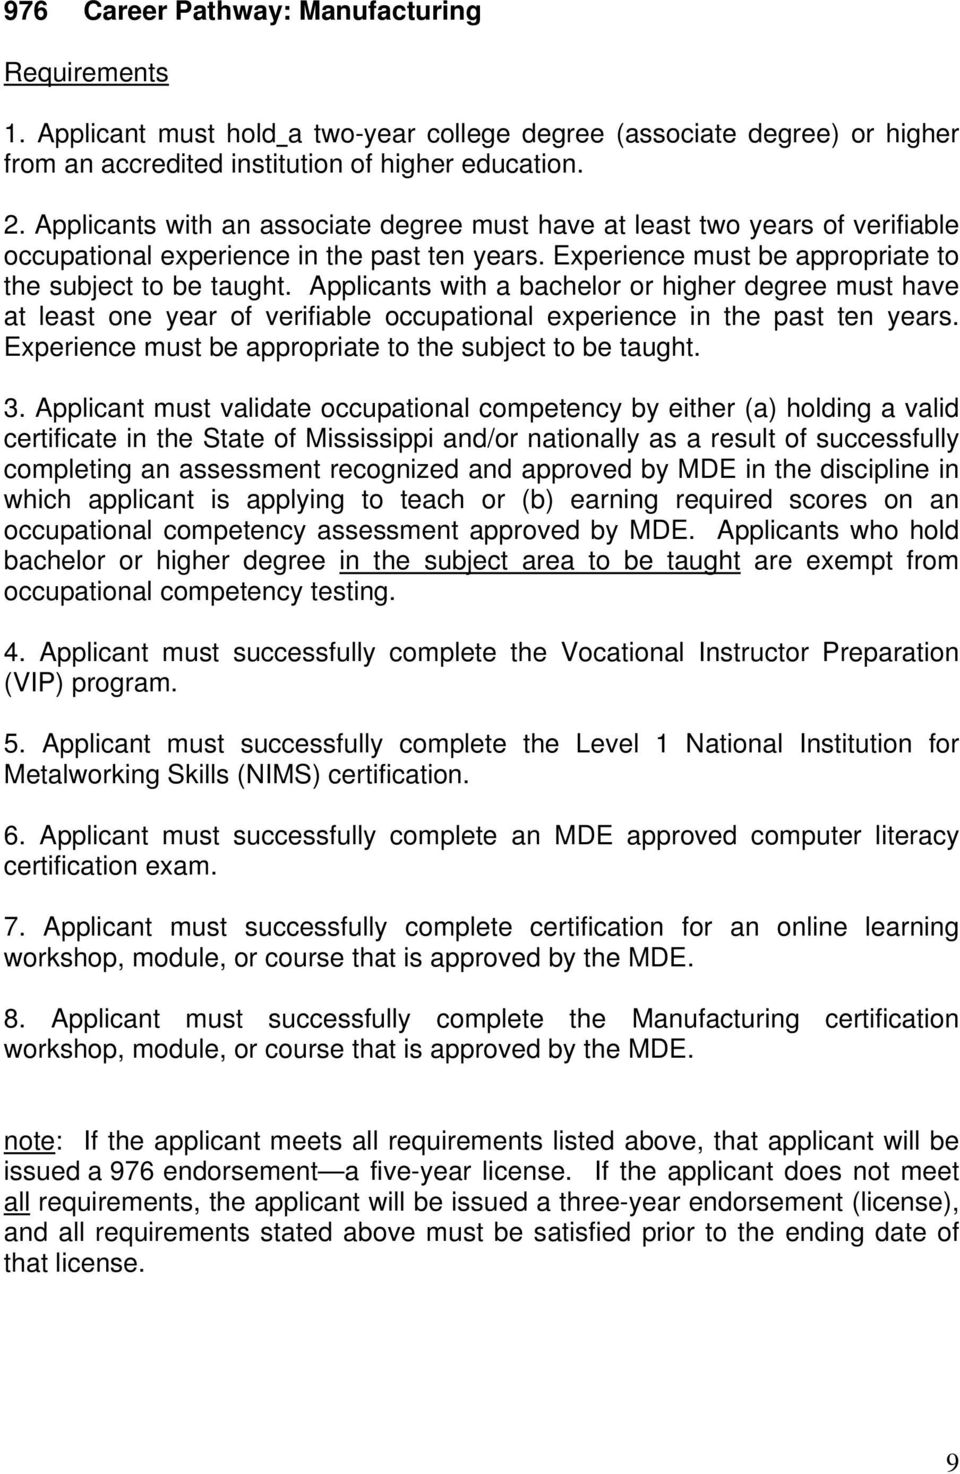 and approved by MDE in the discipline in which applicant is applying to teach or (b) earning required scores on an occupational competency assessment approved by MDE.